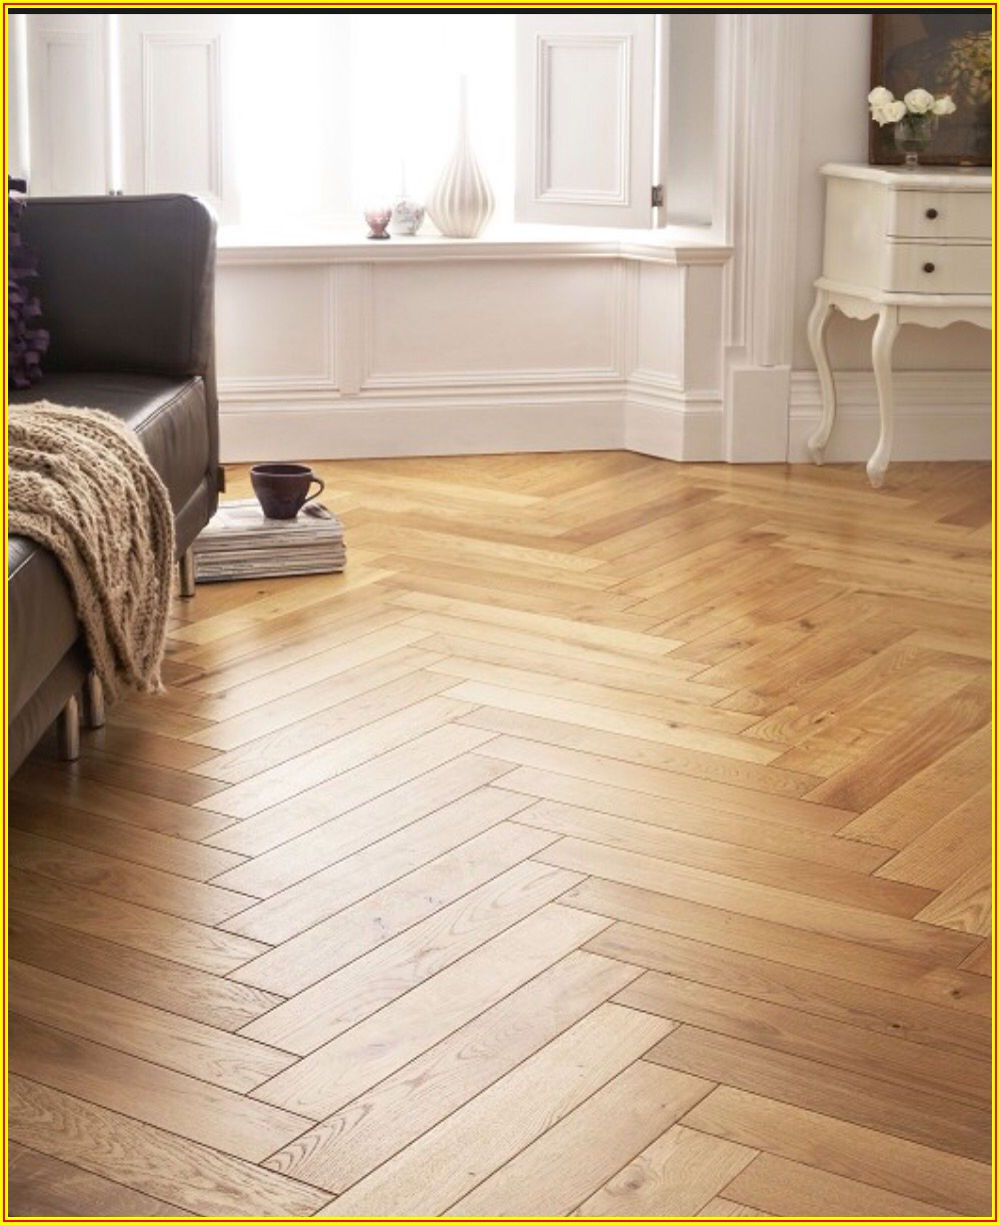 Herringbone Pattern Laminate Flooring